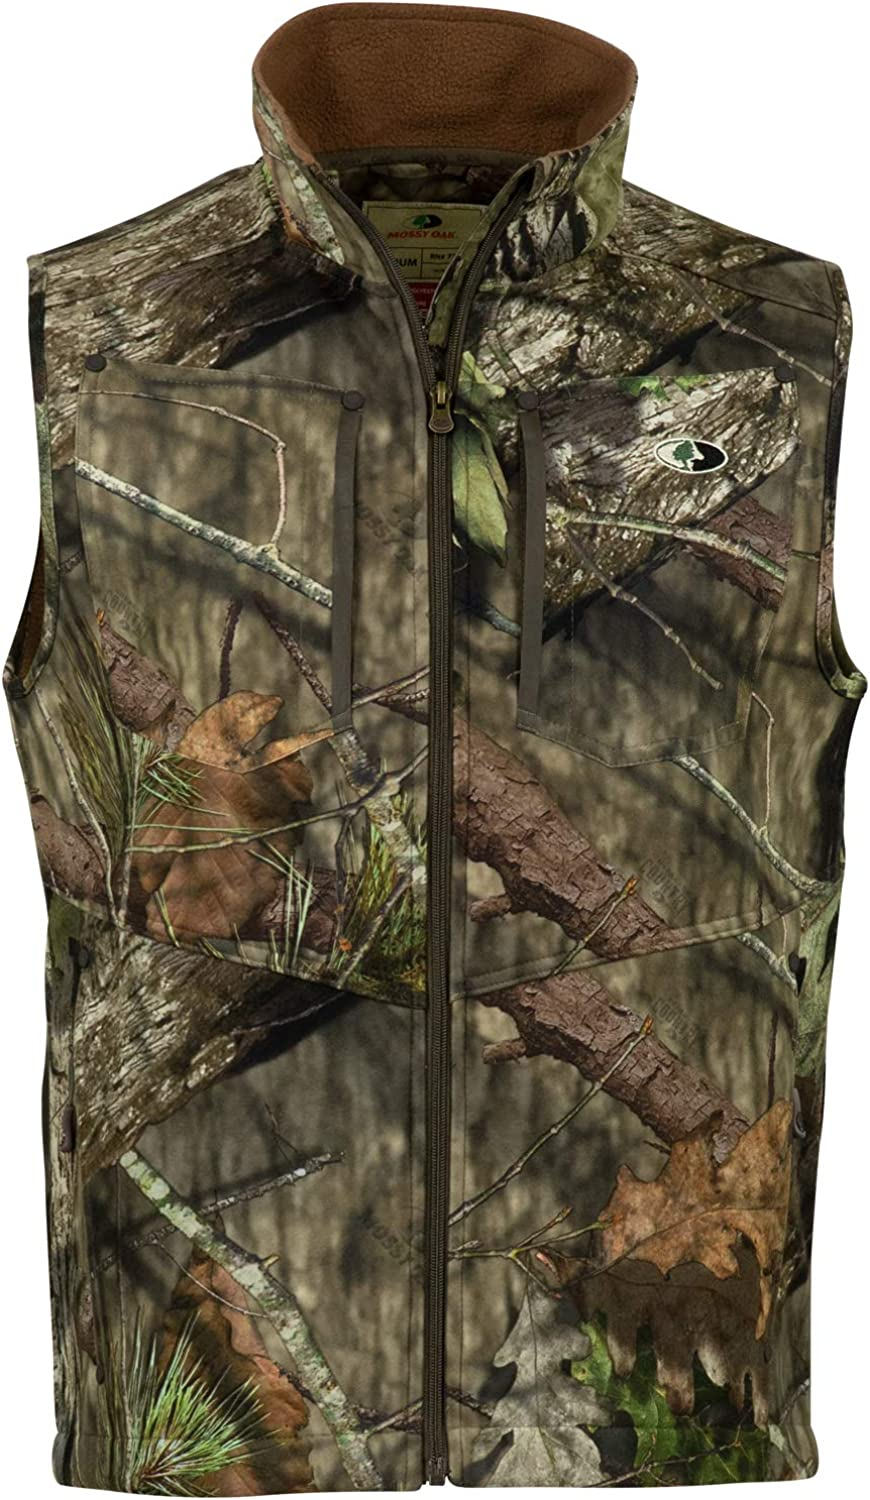 Mossy Oak Sherpa 2.0 Fleece Lined Camo Hunting Vest for Men, Camouflage Clothing